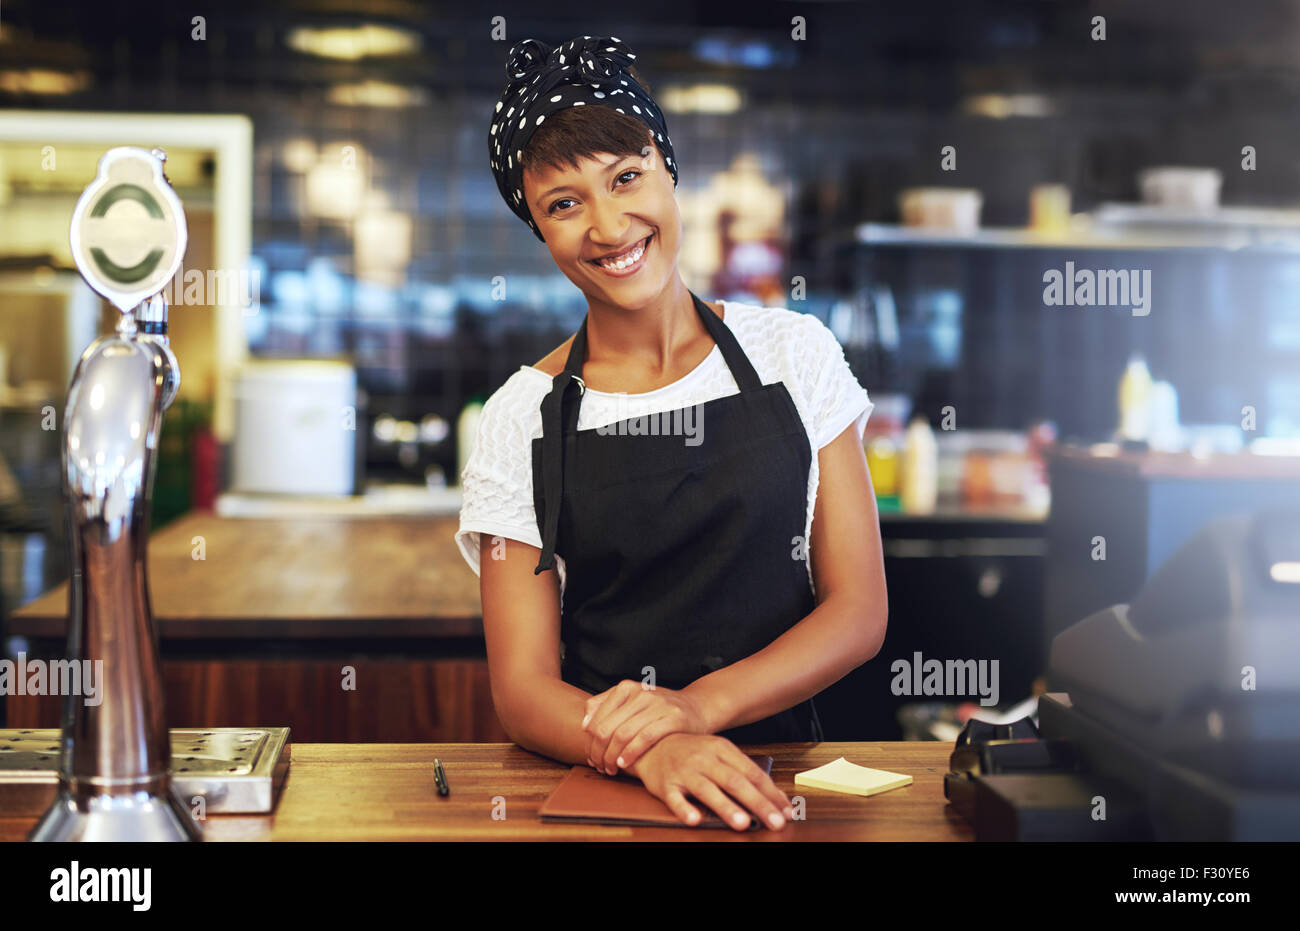 Warm welcoming young business entrepreneur standing behind the counter in her cafe giving the camera a beaming smile - Stock Image